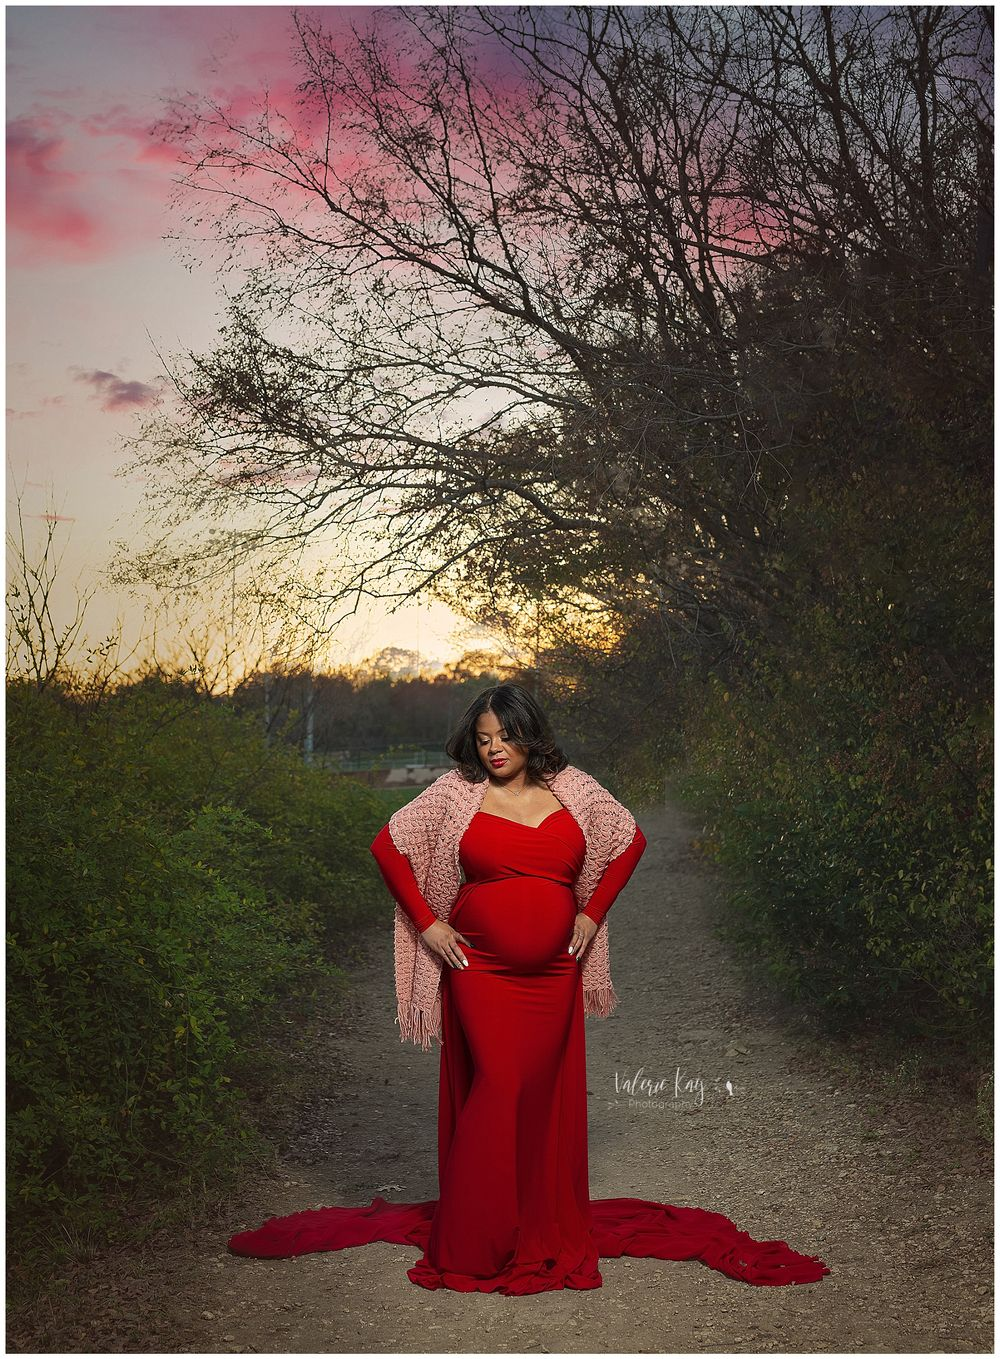 Austin Newborn Photography Maternity Portrait Modern maternity outdoor dramatic sunset skies